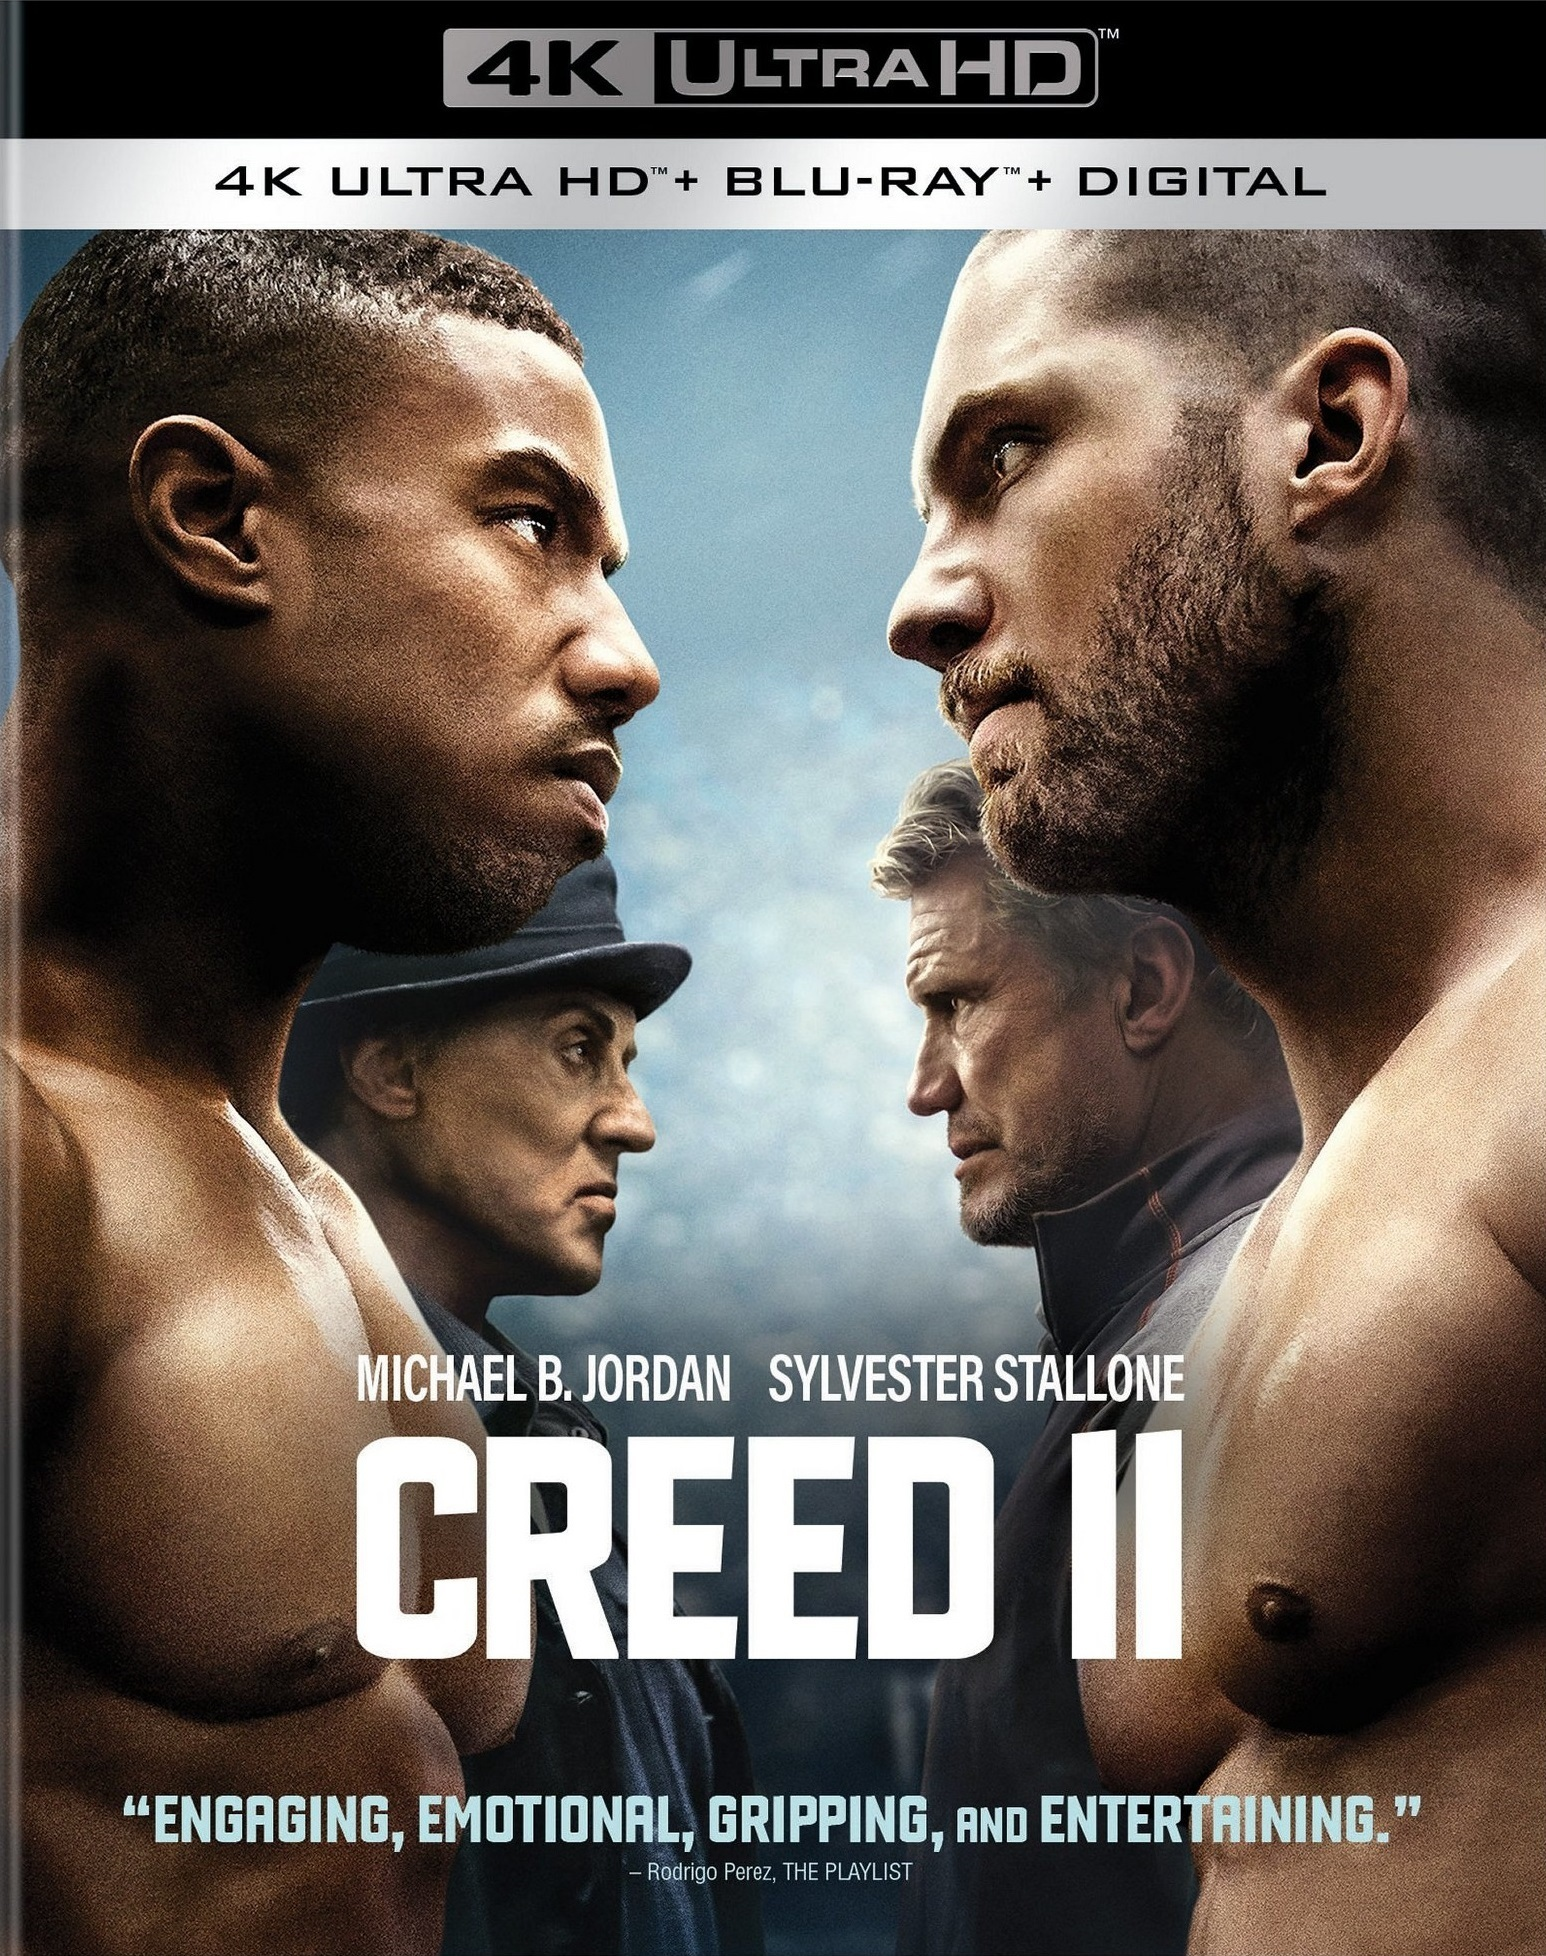 Creed 2 (4K Ultra HD Blu-ray)(Pre-order / Mar 5)